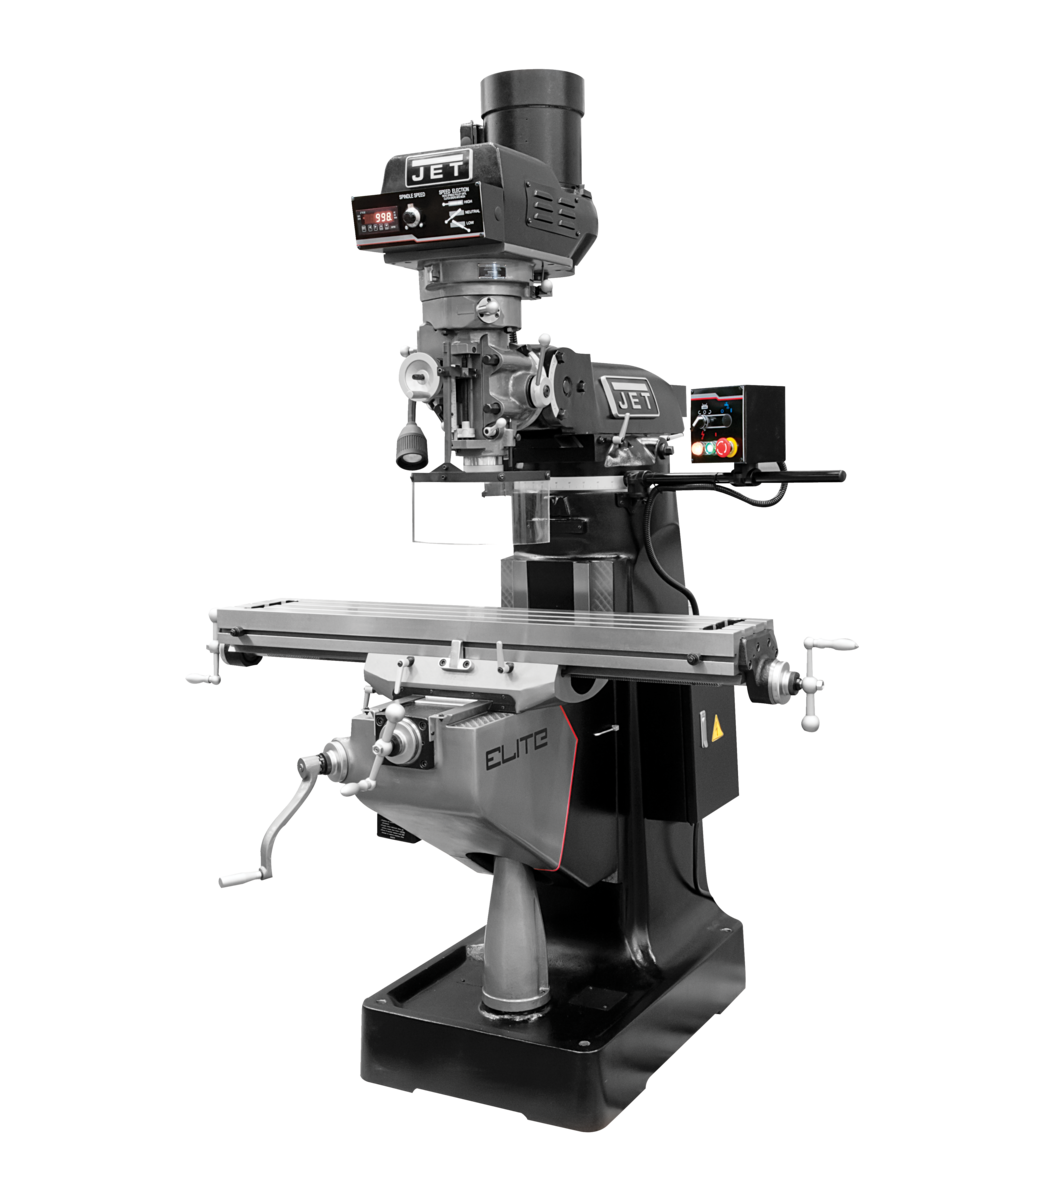 EVS-949 Mill with 3-Axis ACU-RITE 303  (Knee) DRO and X, Y, Z-Axis JET Powerfeeds and USA Made Air Draw Bar